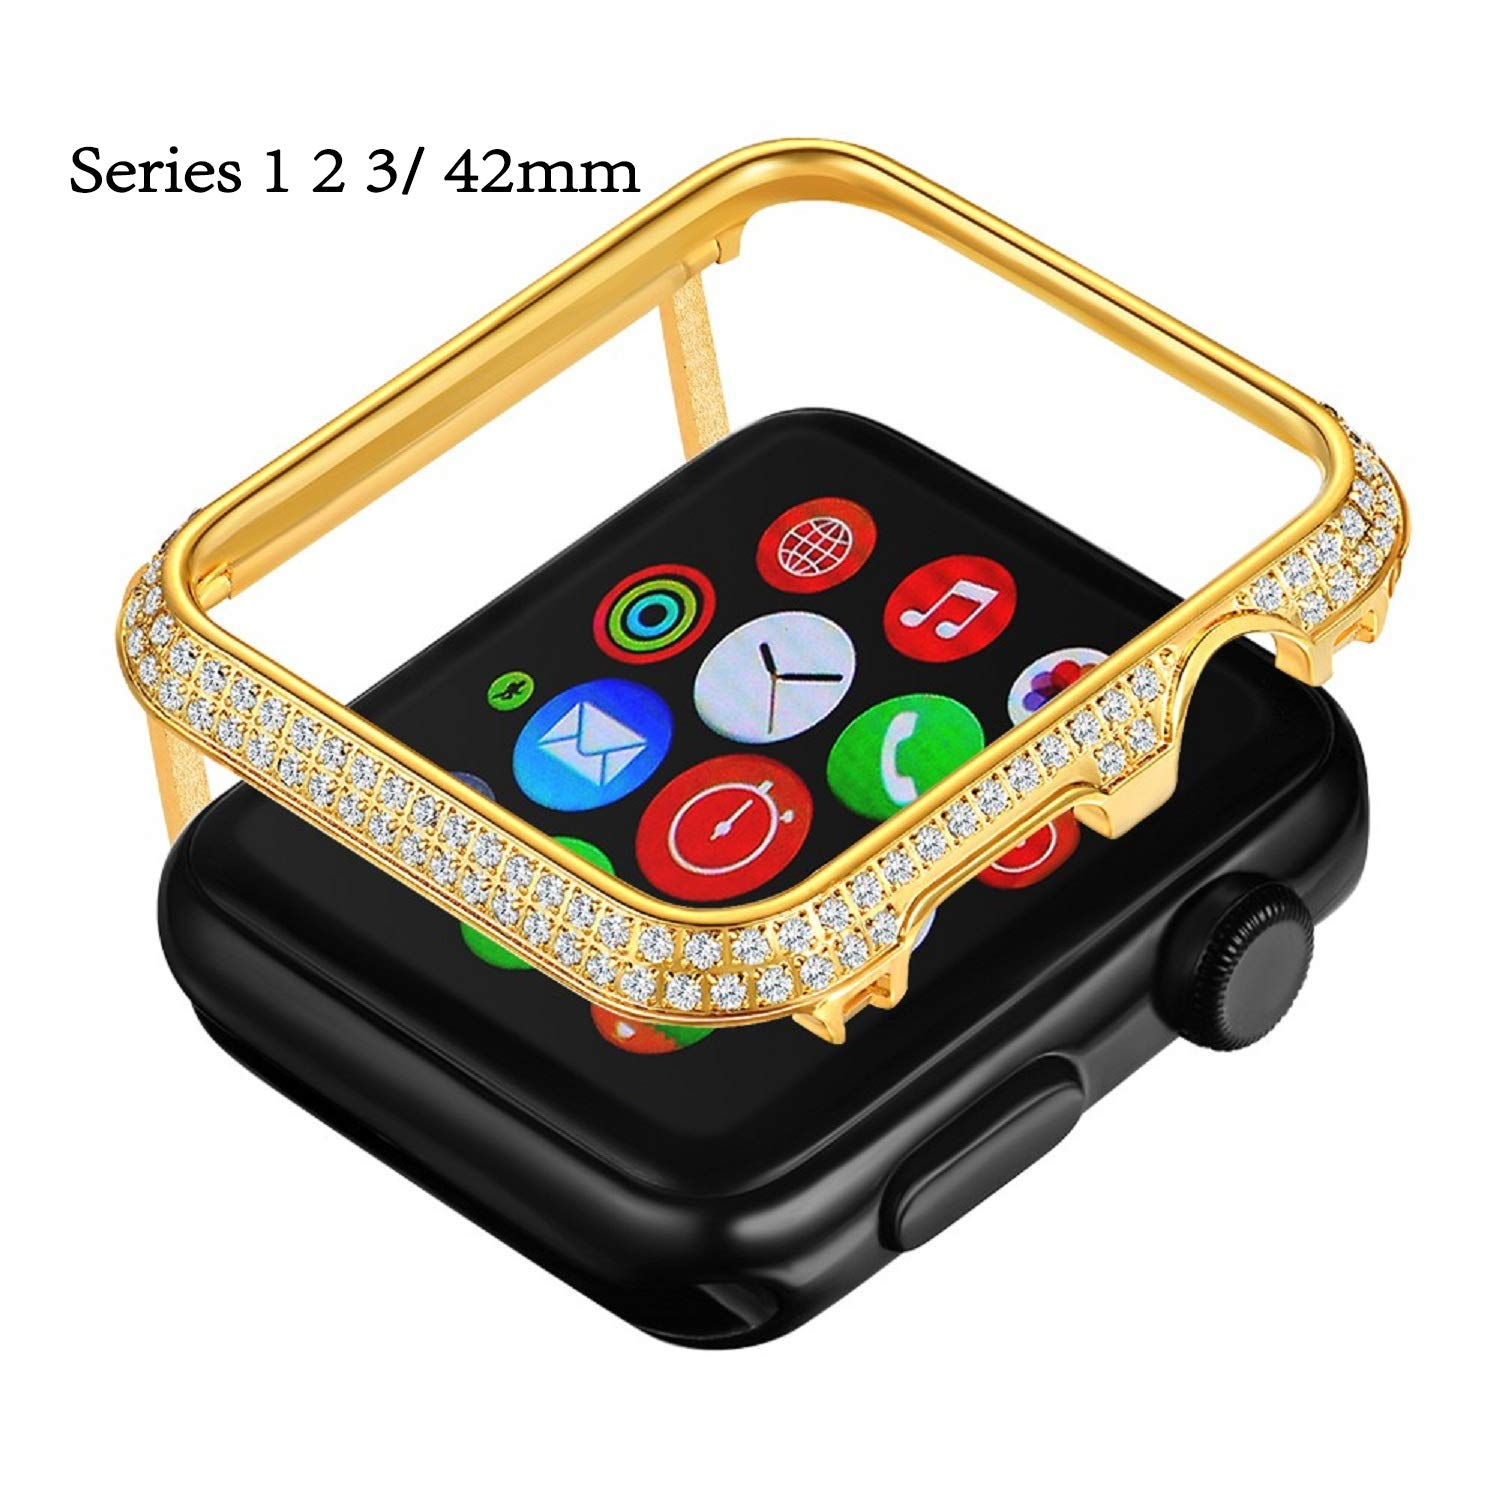 Callancity Gold Plated Face Cover Crystal Case Decoration Bezel Compatible with Apple Watch Series 3 2 1 42mm for Men/Women by Callancity